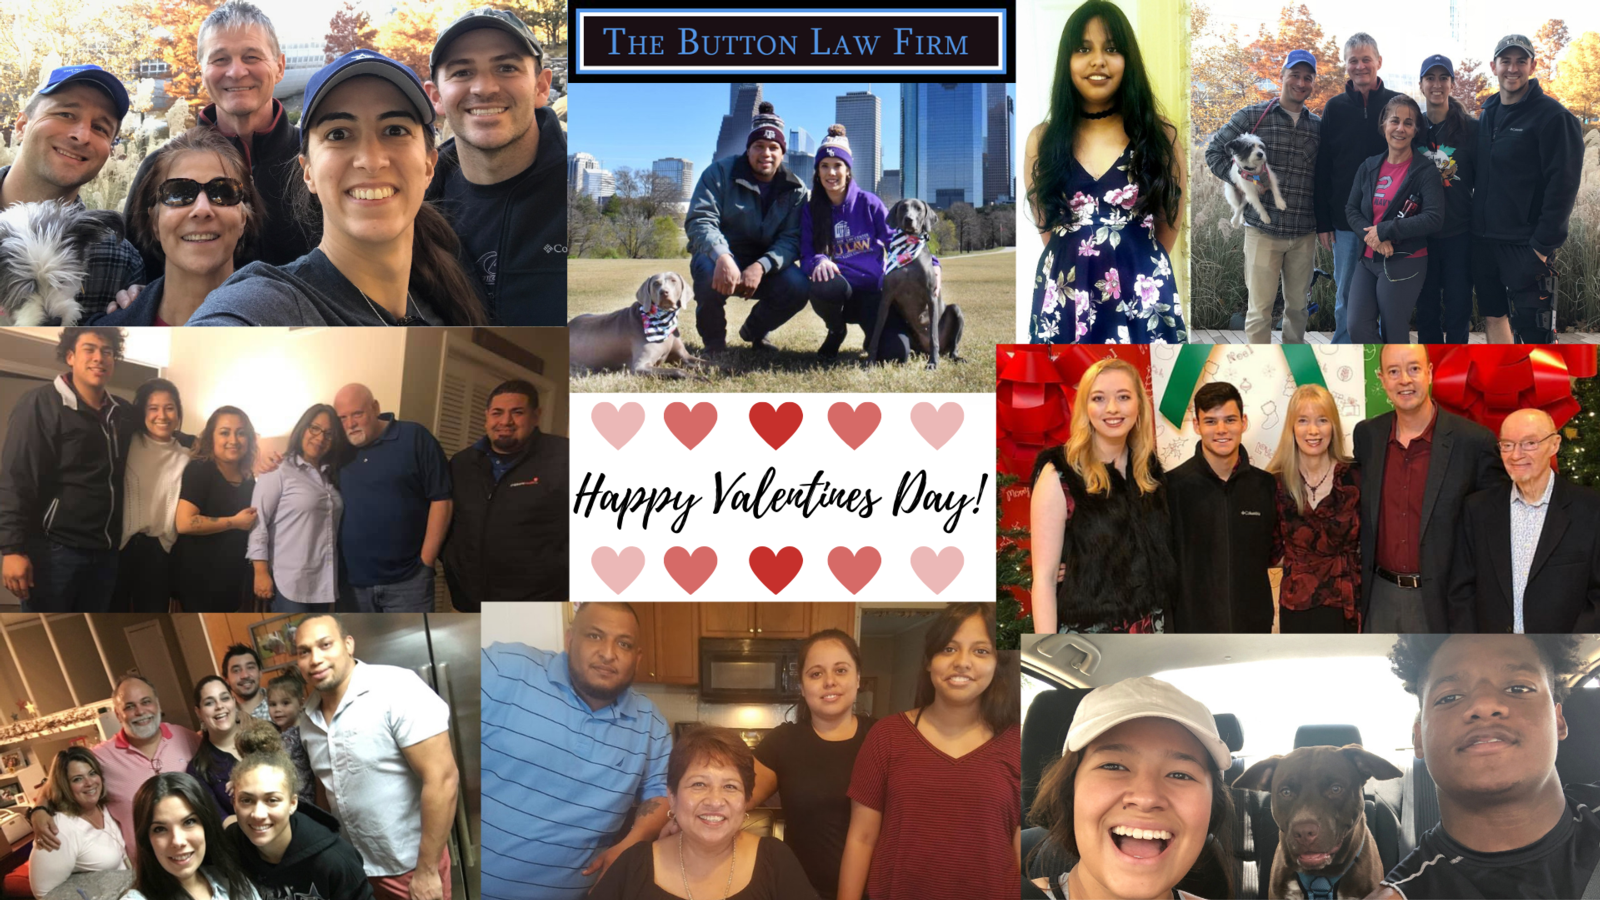 The Button Law Firm celebrates Valentine's Day